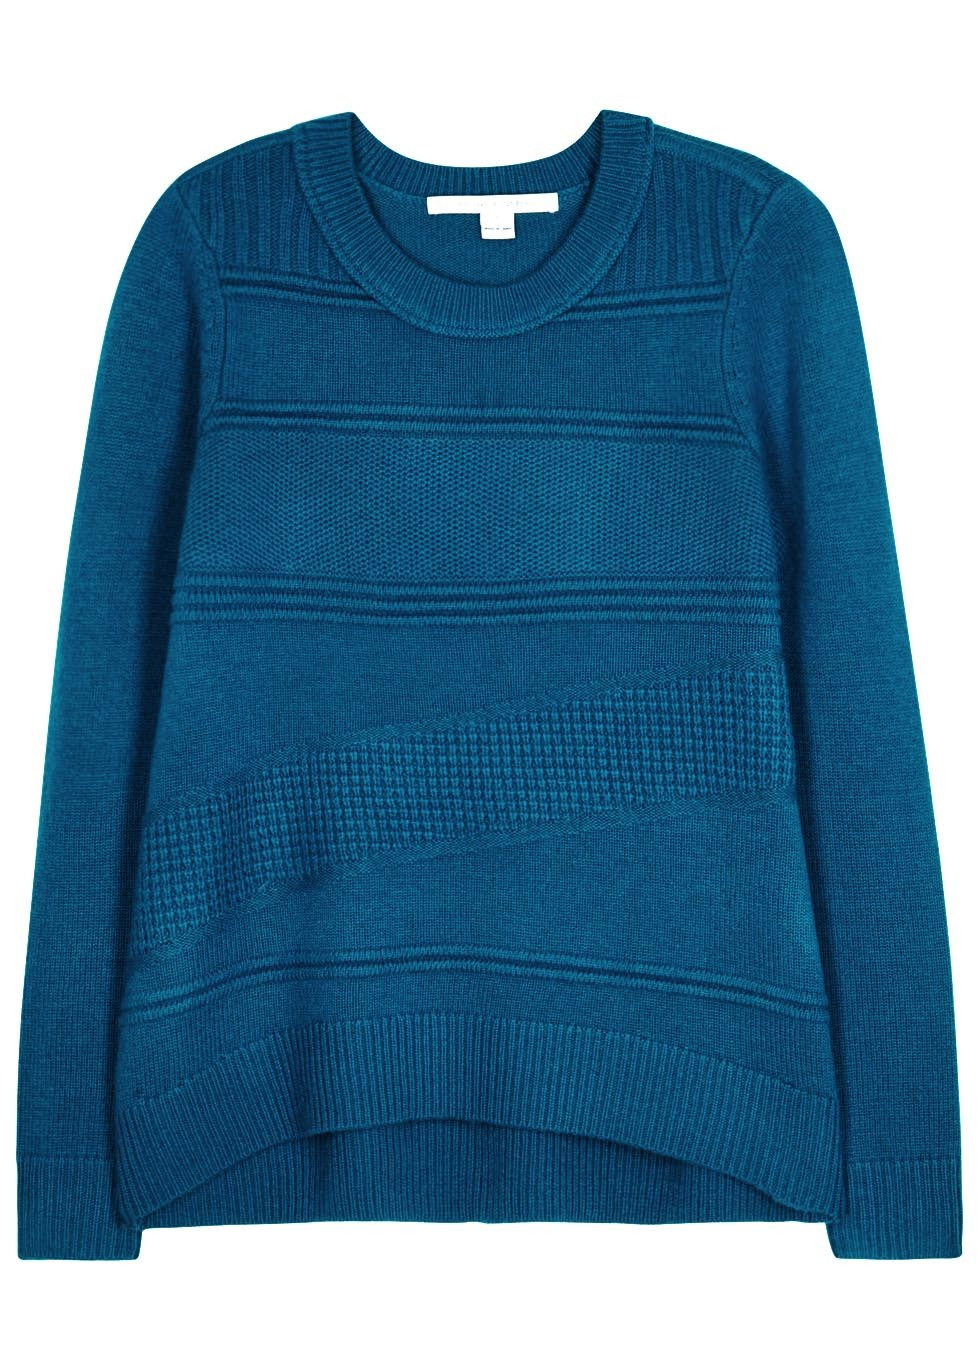 Kingston Peacock Blue Wool Blend Jumper - style: standard; predominant colour: teal; occasions: casual, creative work; length: standard; fibres: wool - mix; fit: standard fit; neckline: crew; sleeve length: long sleeve; sleeve style: standard; texture group: knits/crochet; pattern type: knitted - other; pattern: patterned/print; season: a/w 2016; wardrobe: highlight